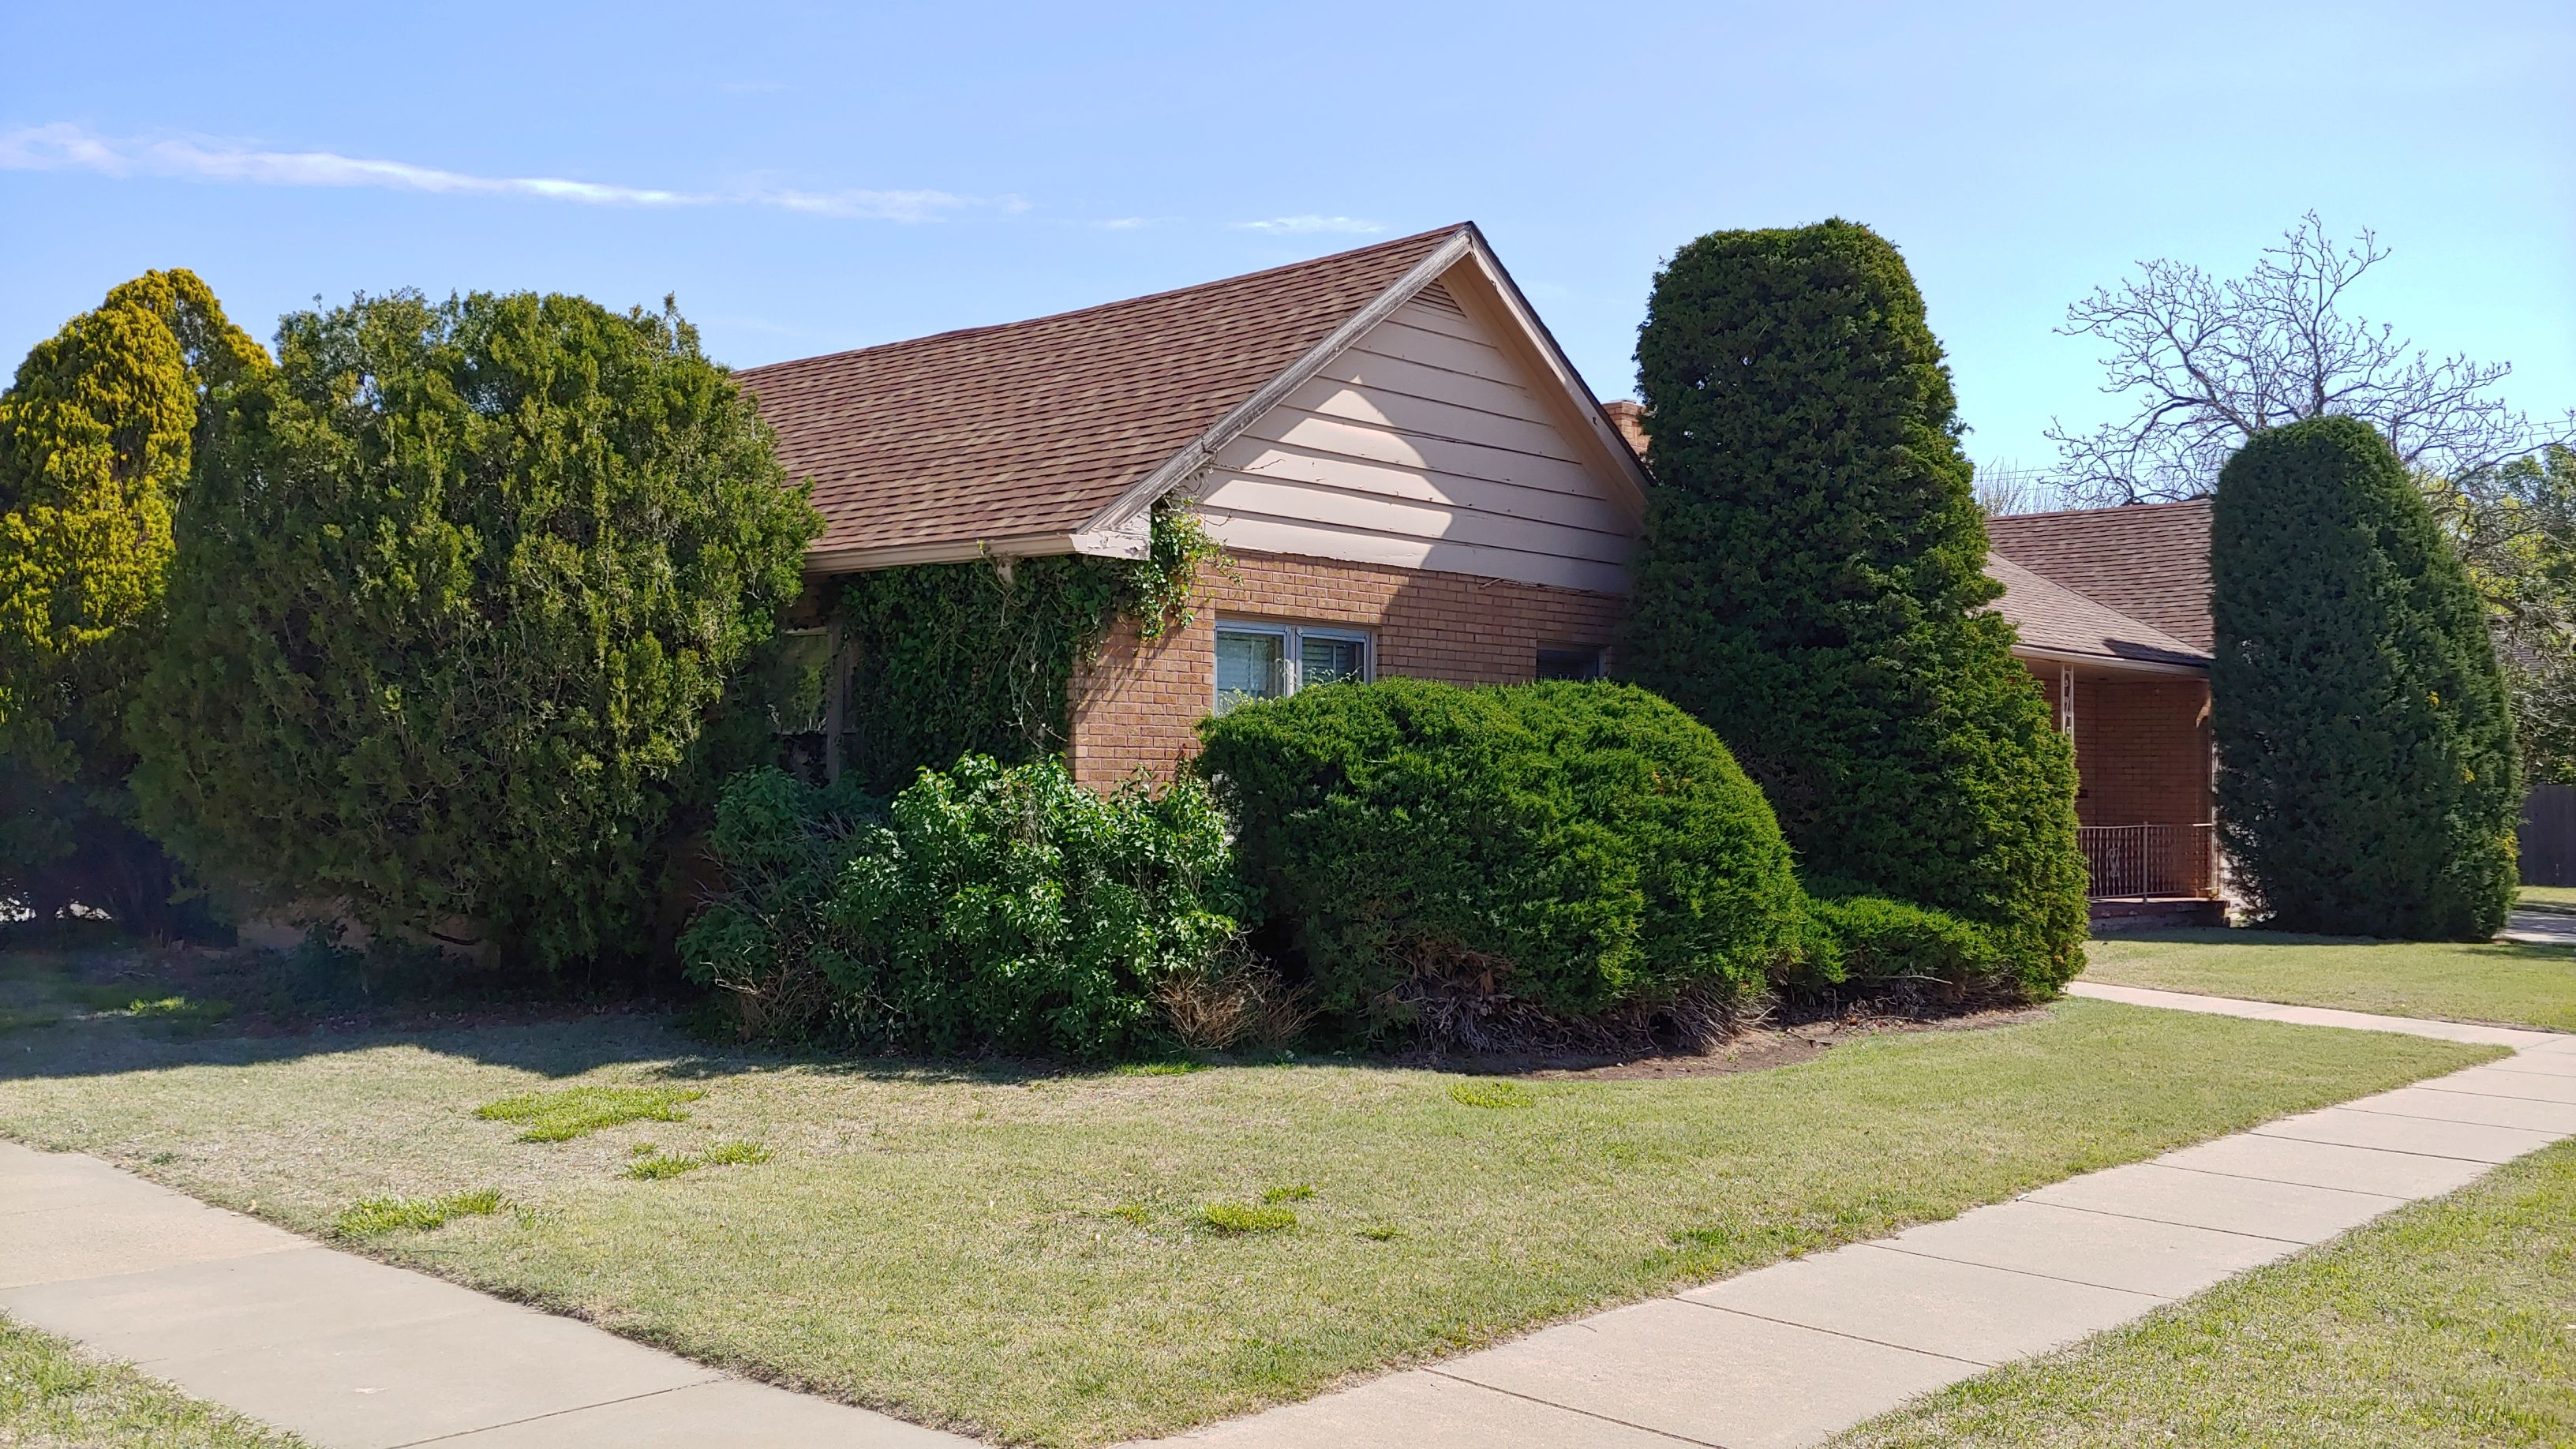 Item 32 in Real Estate and Personal Property Auction gallery